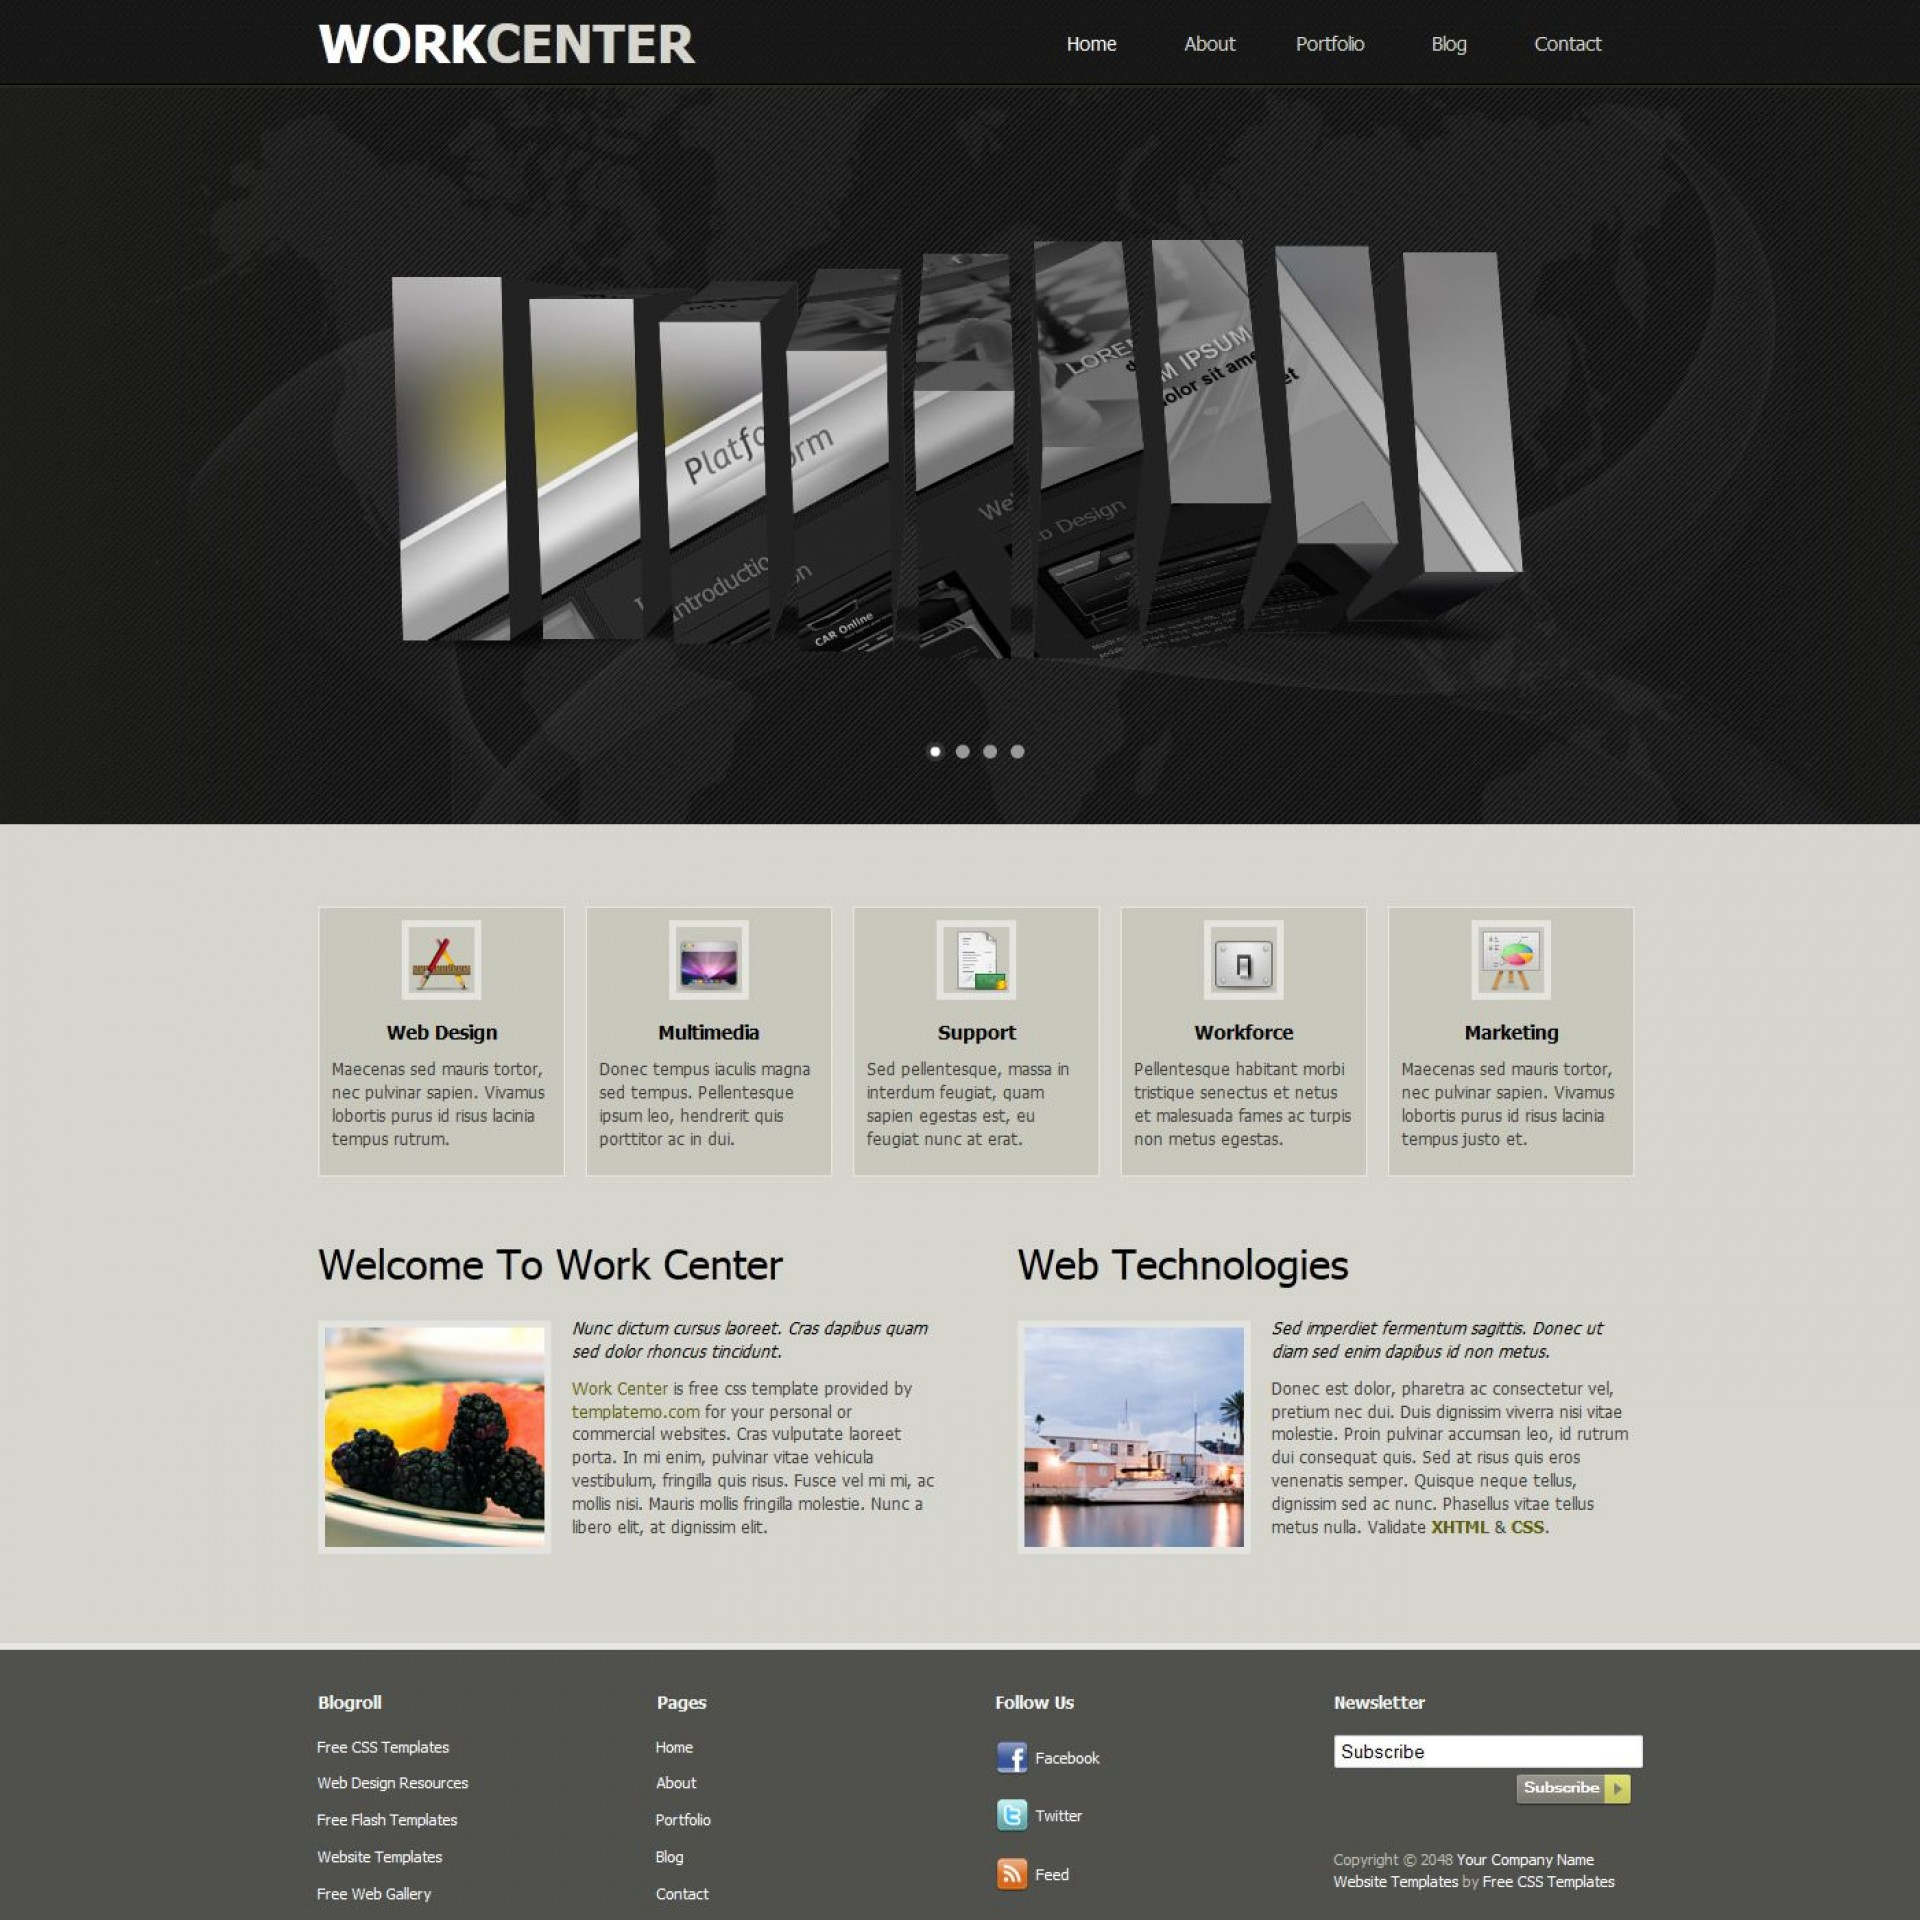 007 Archaicawful Free Website Template Dreamweaver Highest Clarity  Ecommerce Download Construction Html1920